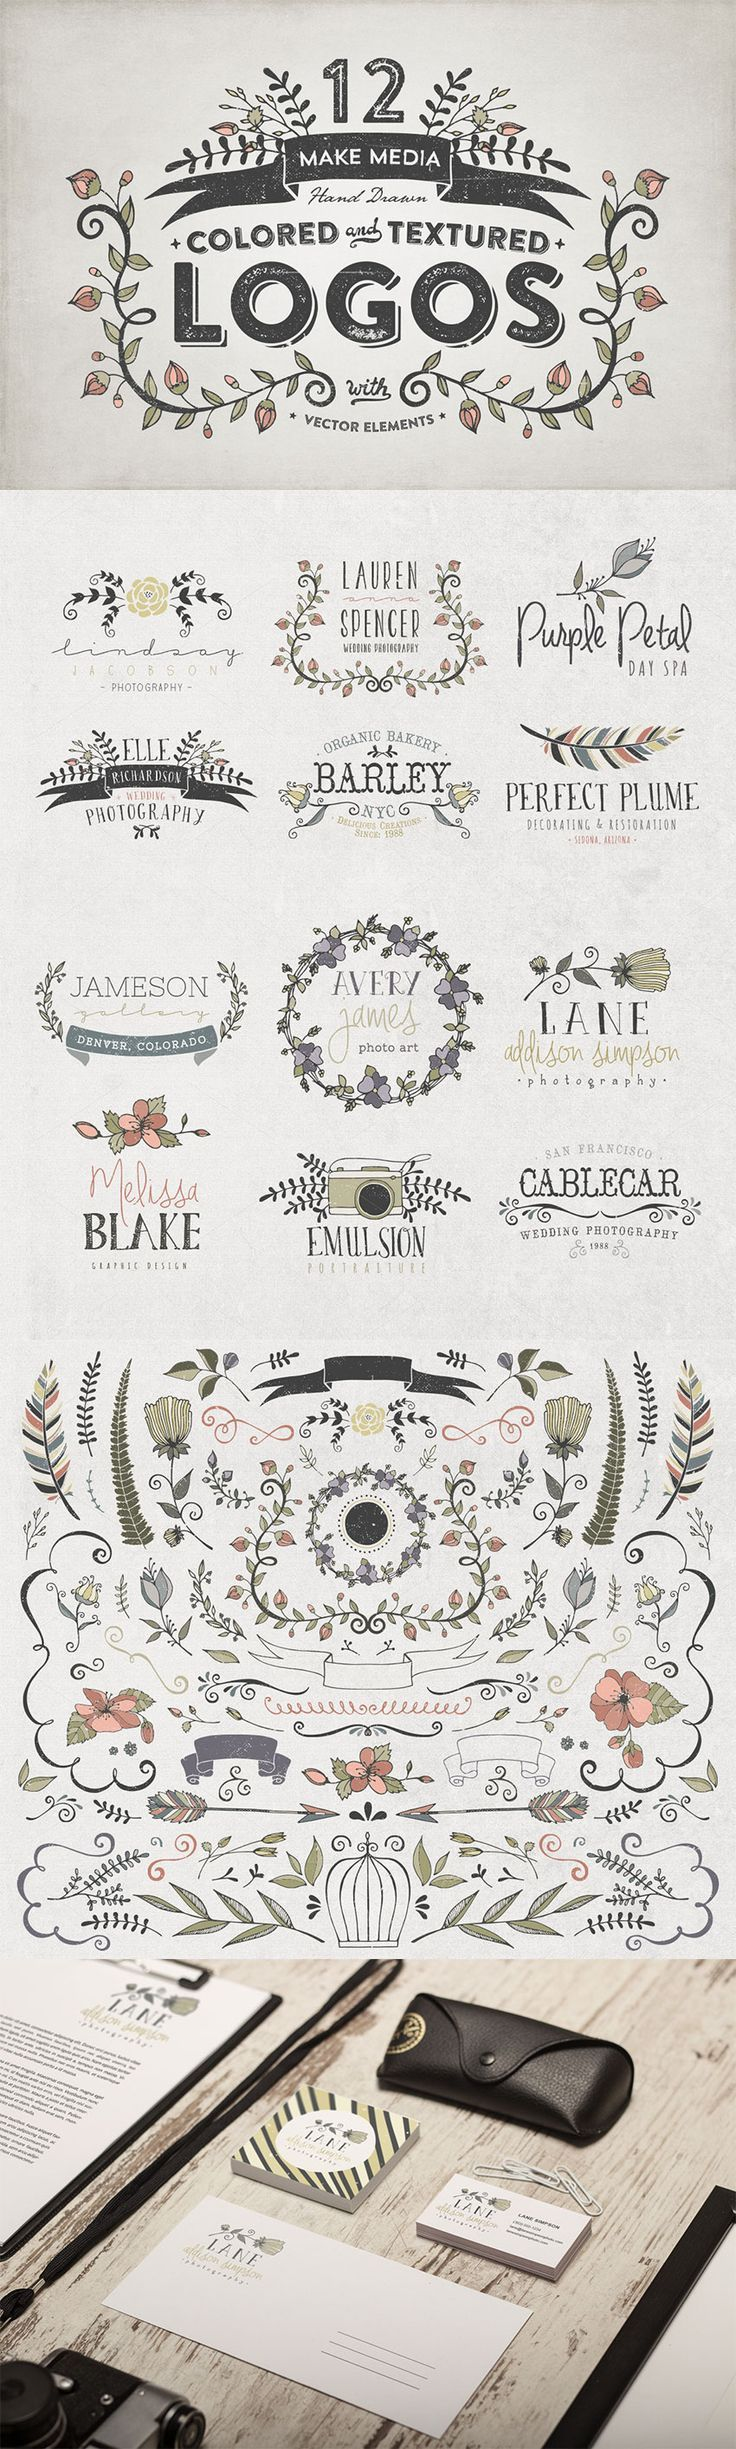 The Hand Drawn Logo Trio (and Bonus Decorative Elements) - Only $19 | MyDesignDeals: